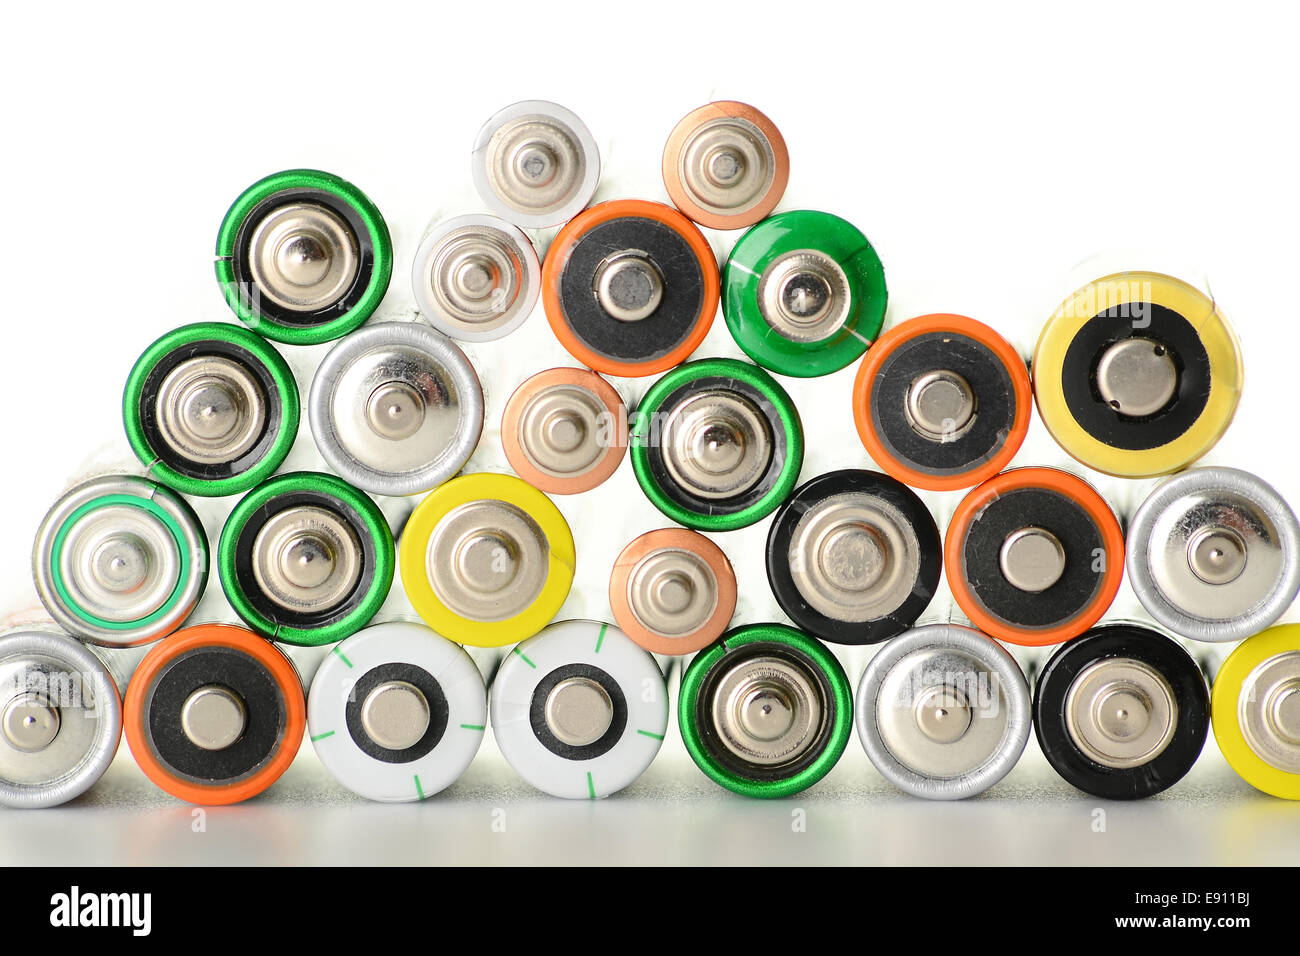 Composition with alkaline batteries - Stock Image